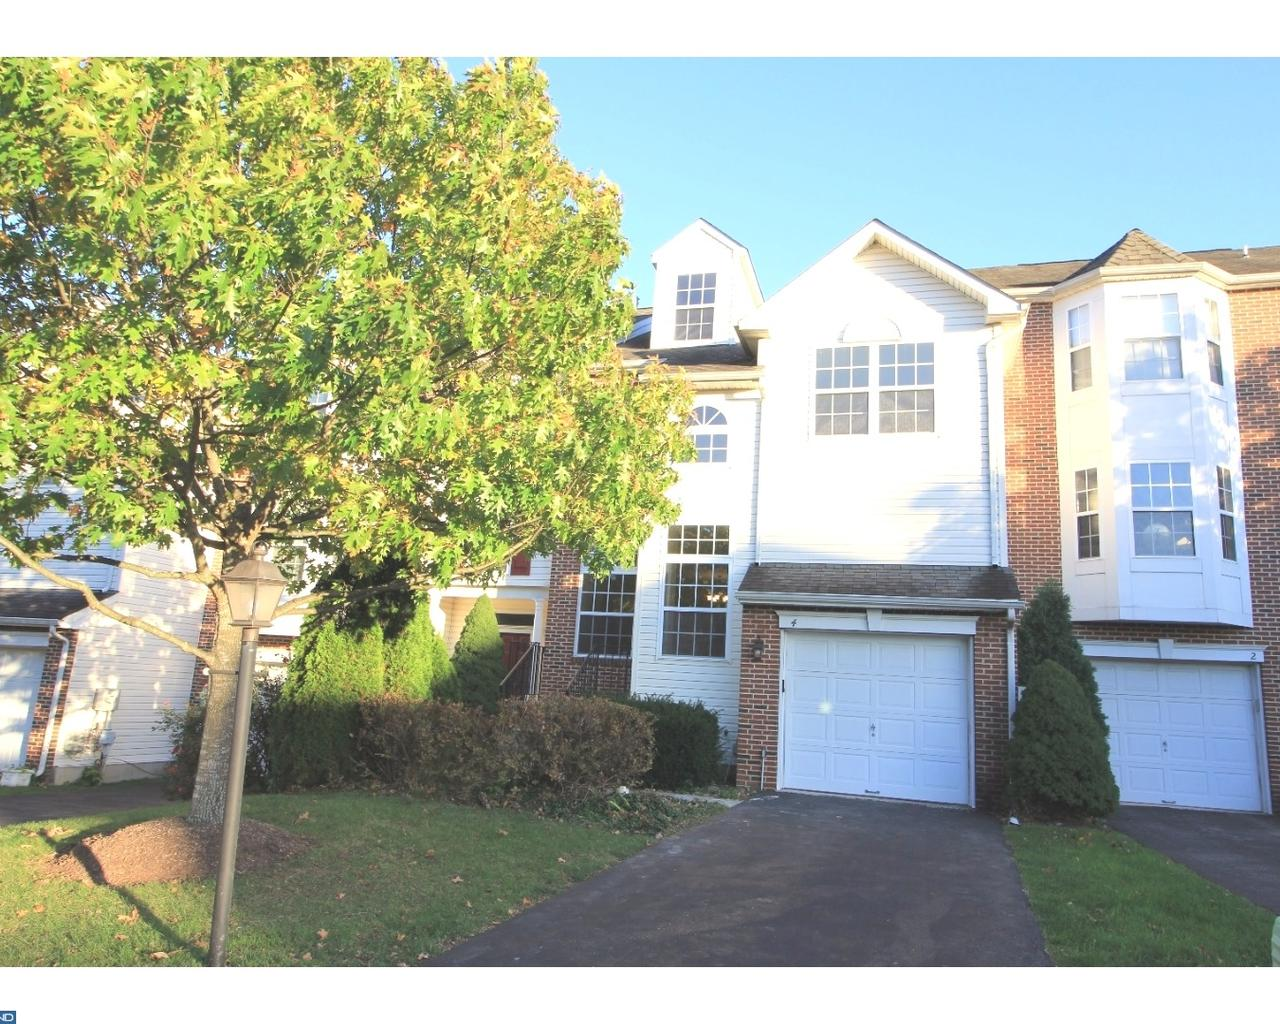 Property for sale at 4 PENMORE PL, Collegeville,  PA 19426